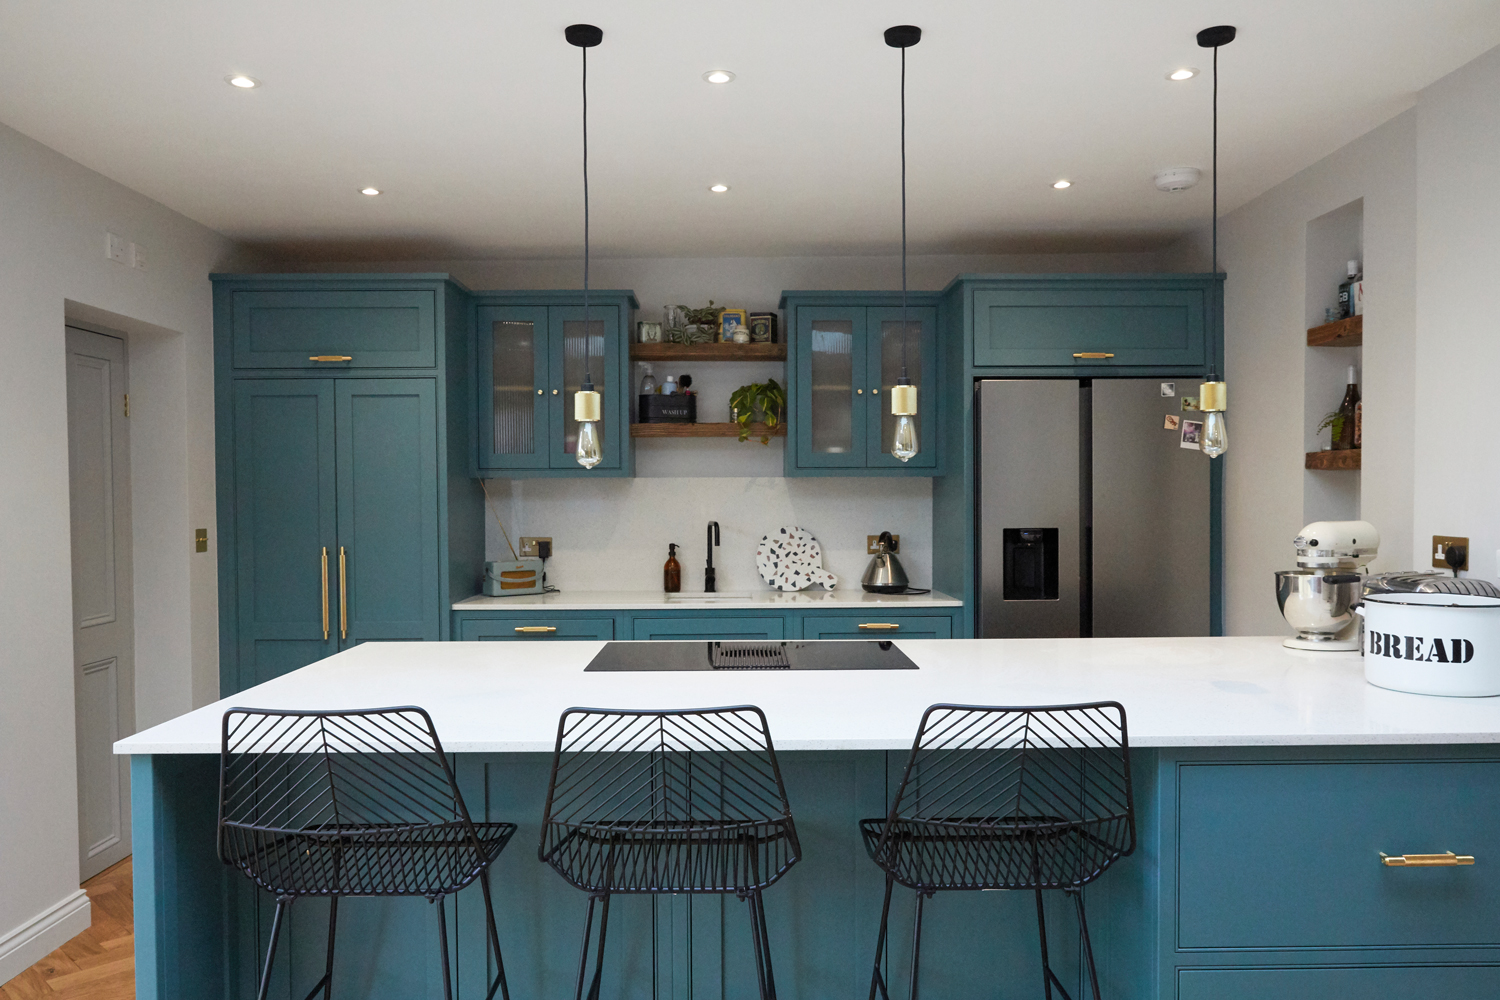 Bespoke kitchen peninsular with black metal barstools and buster + Punch brass bar handles